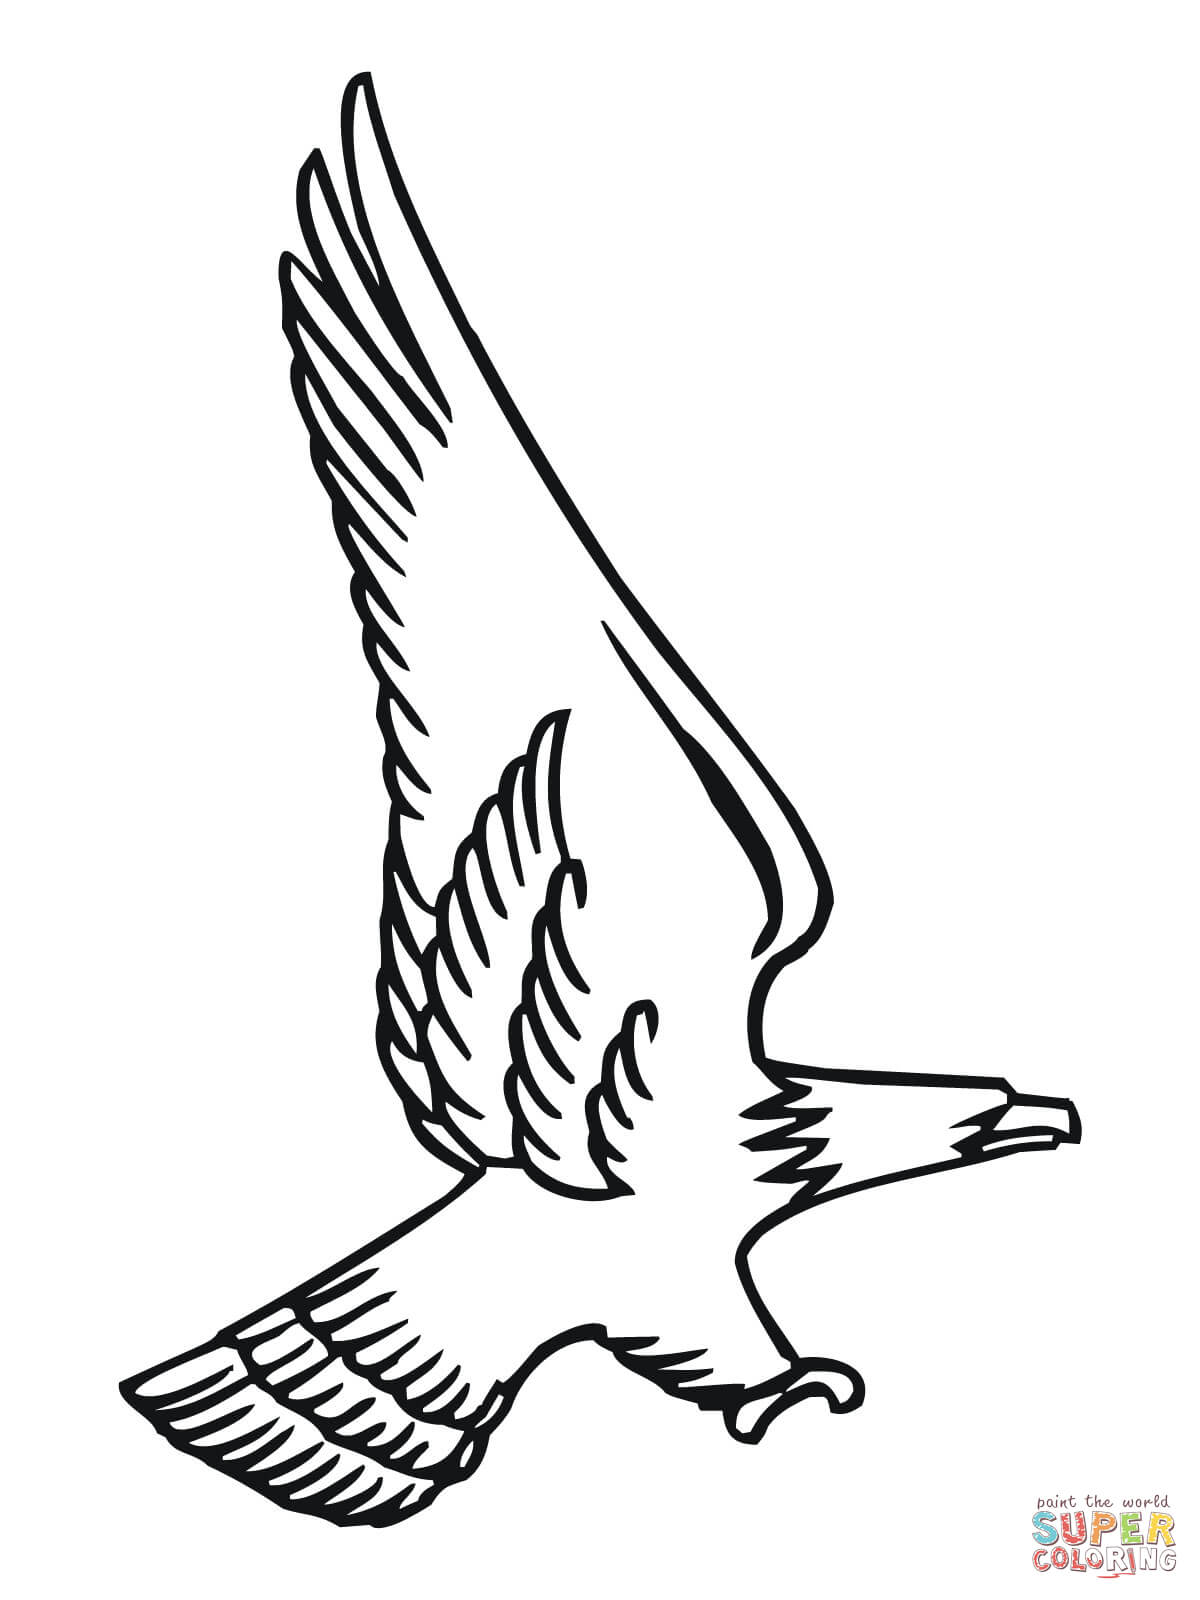 Free coloring page kite - Free Coloring Page Bald Eagle Attacking Bald Eagle Download